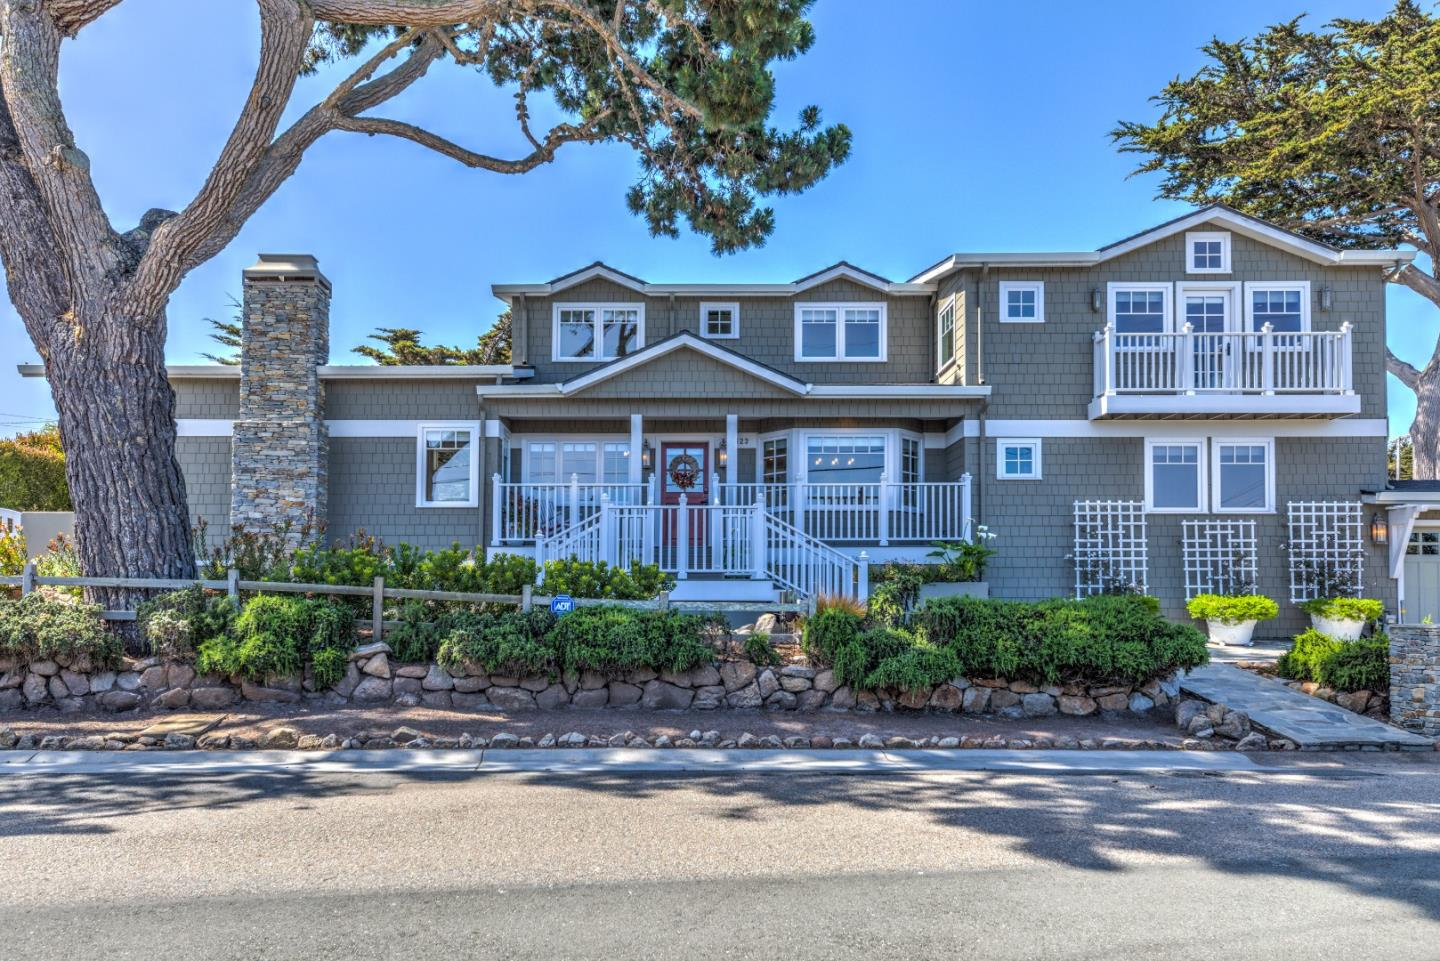 Property for sale at 1123 Balboa AVE, Pacific Grove,  CA 93950